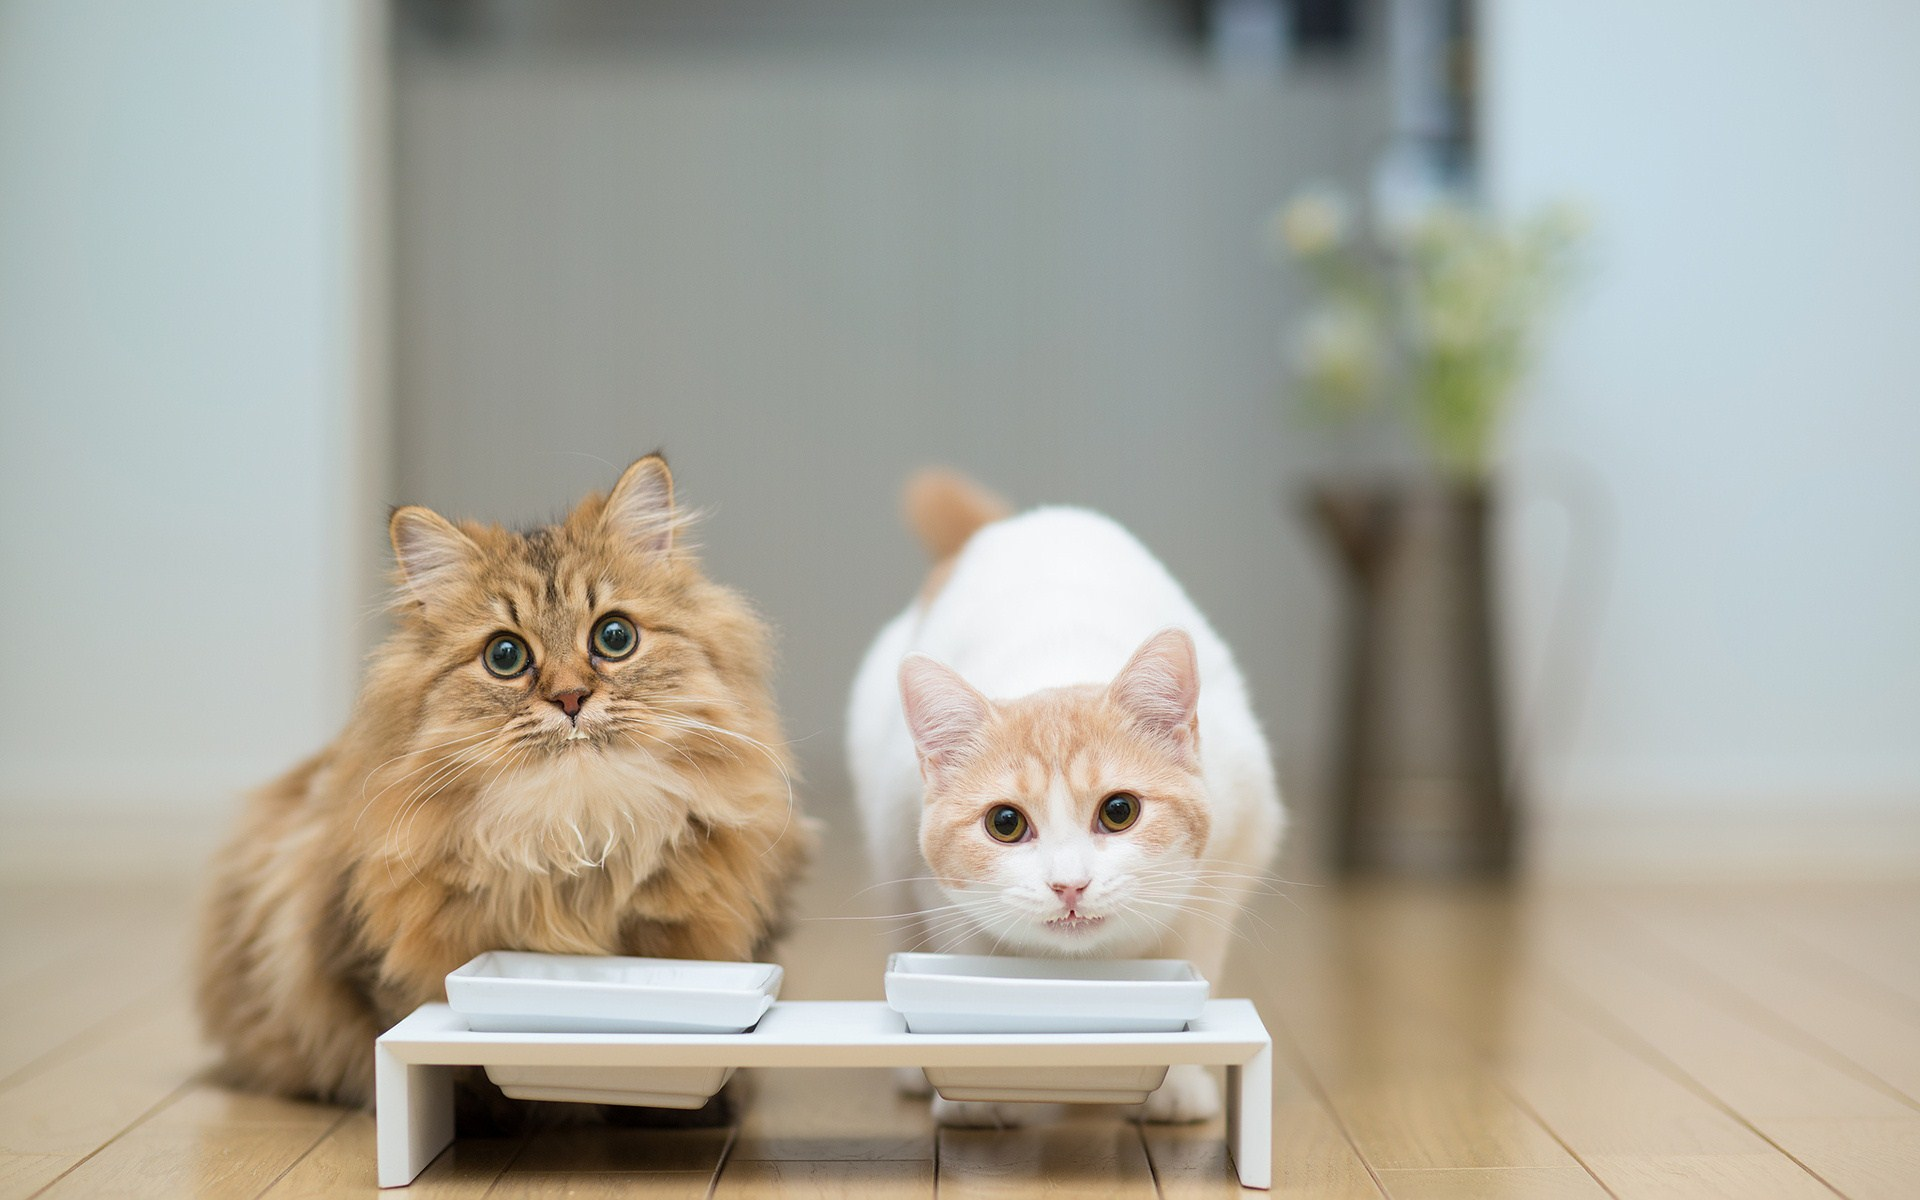 Scared Looking Cats